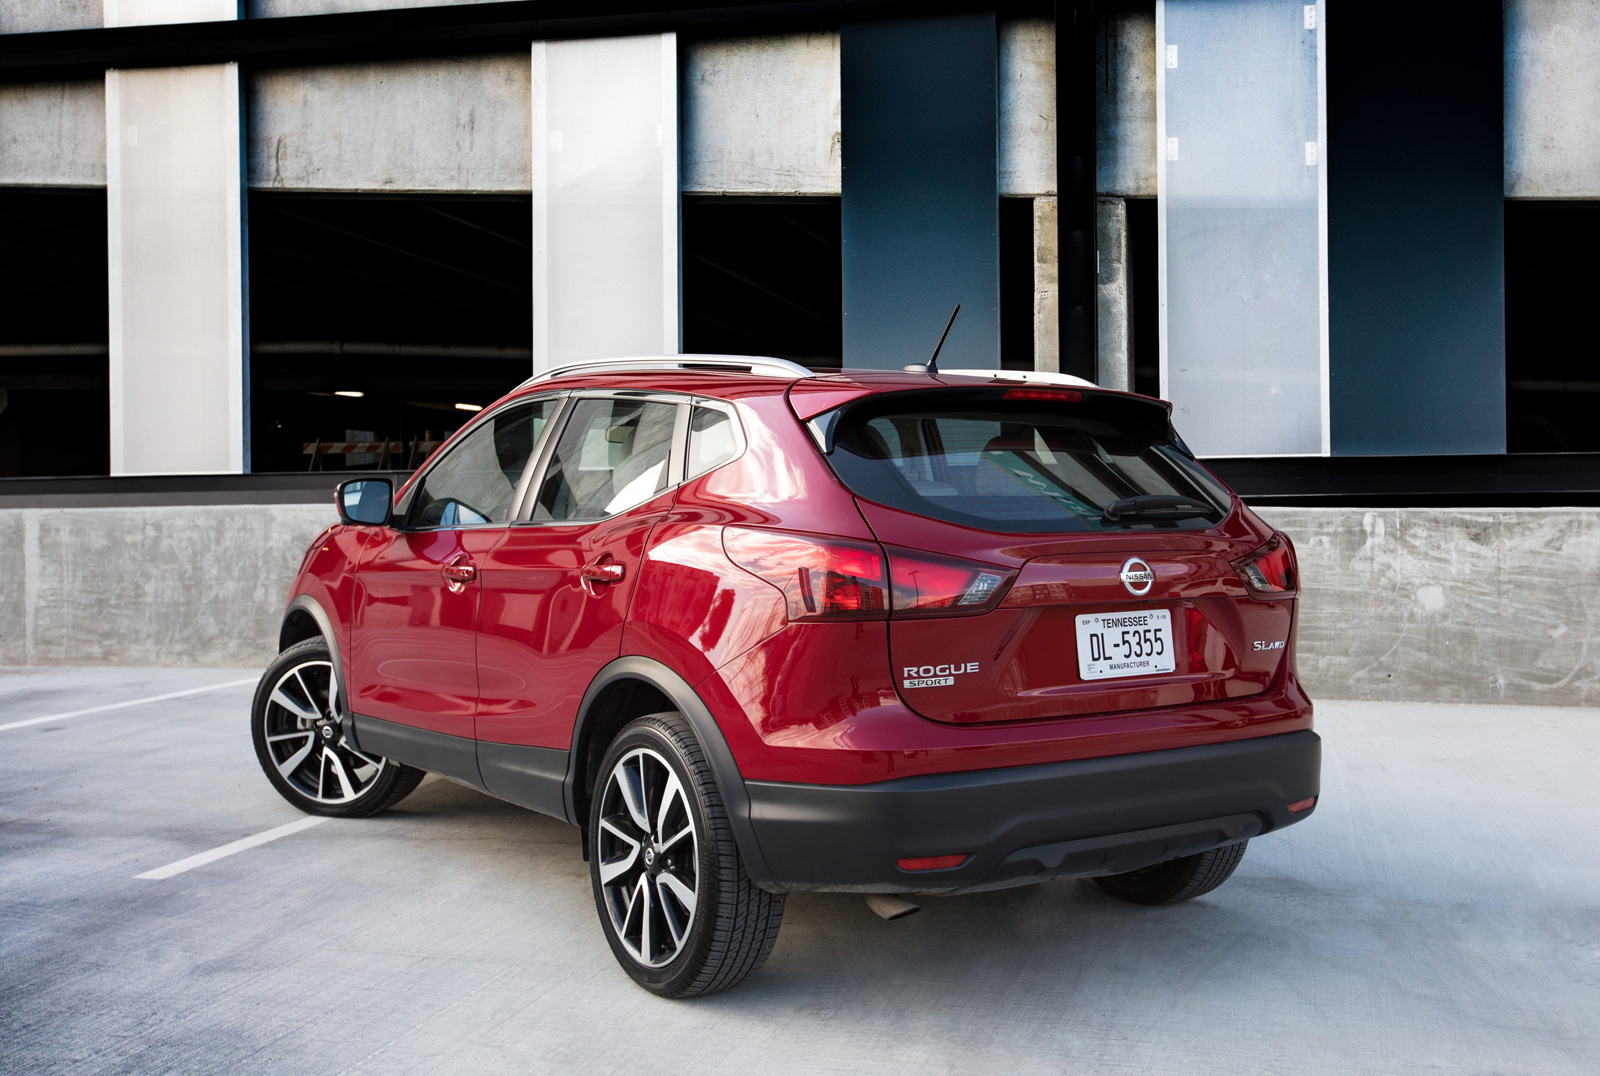 VWVortex.com - Nissan brings the Qashqai to the US as the 2017 Rogue Sport - On-sale in the Spring